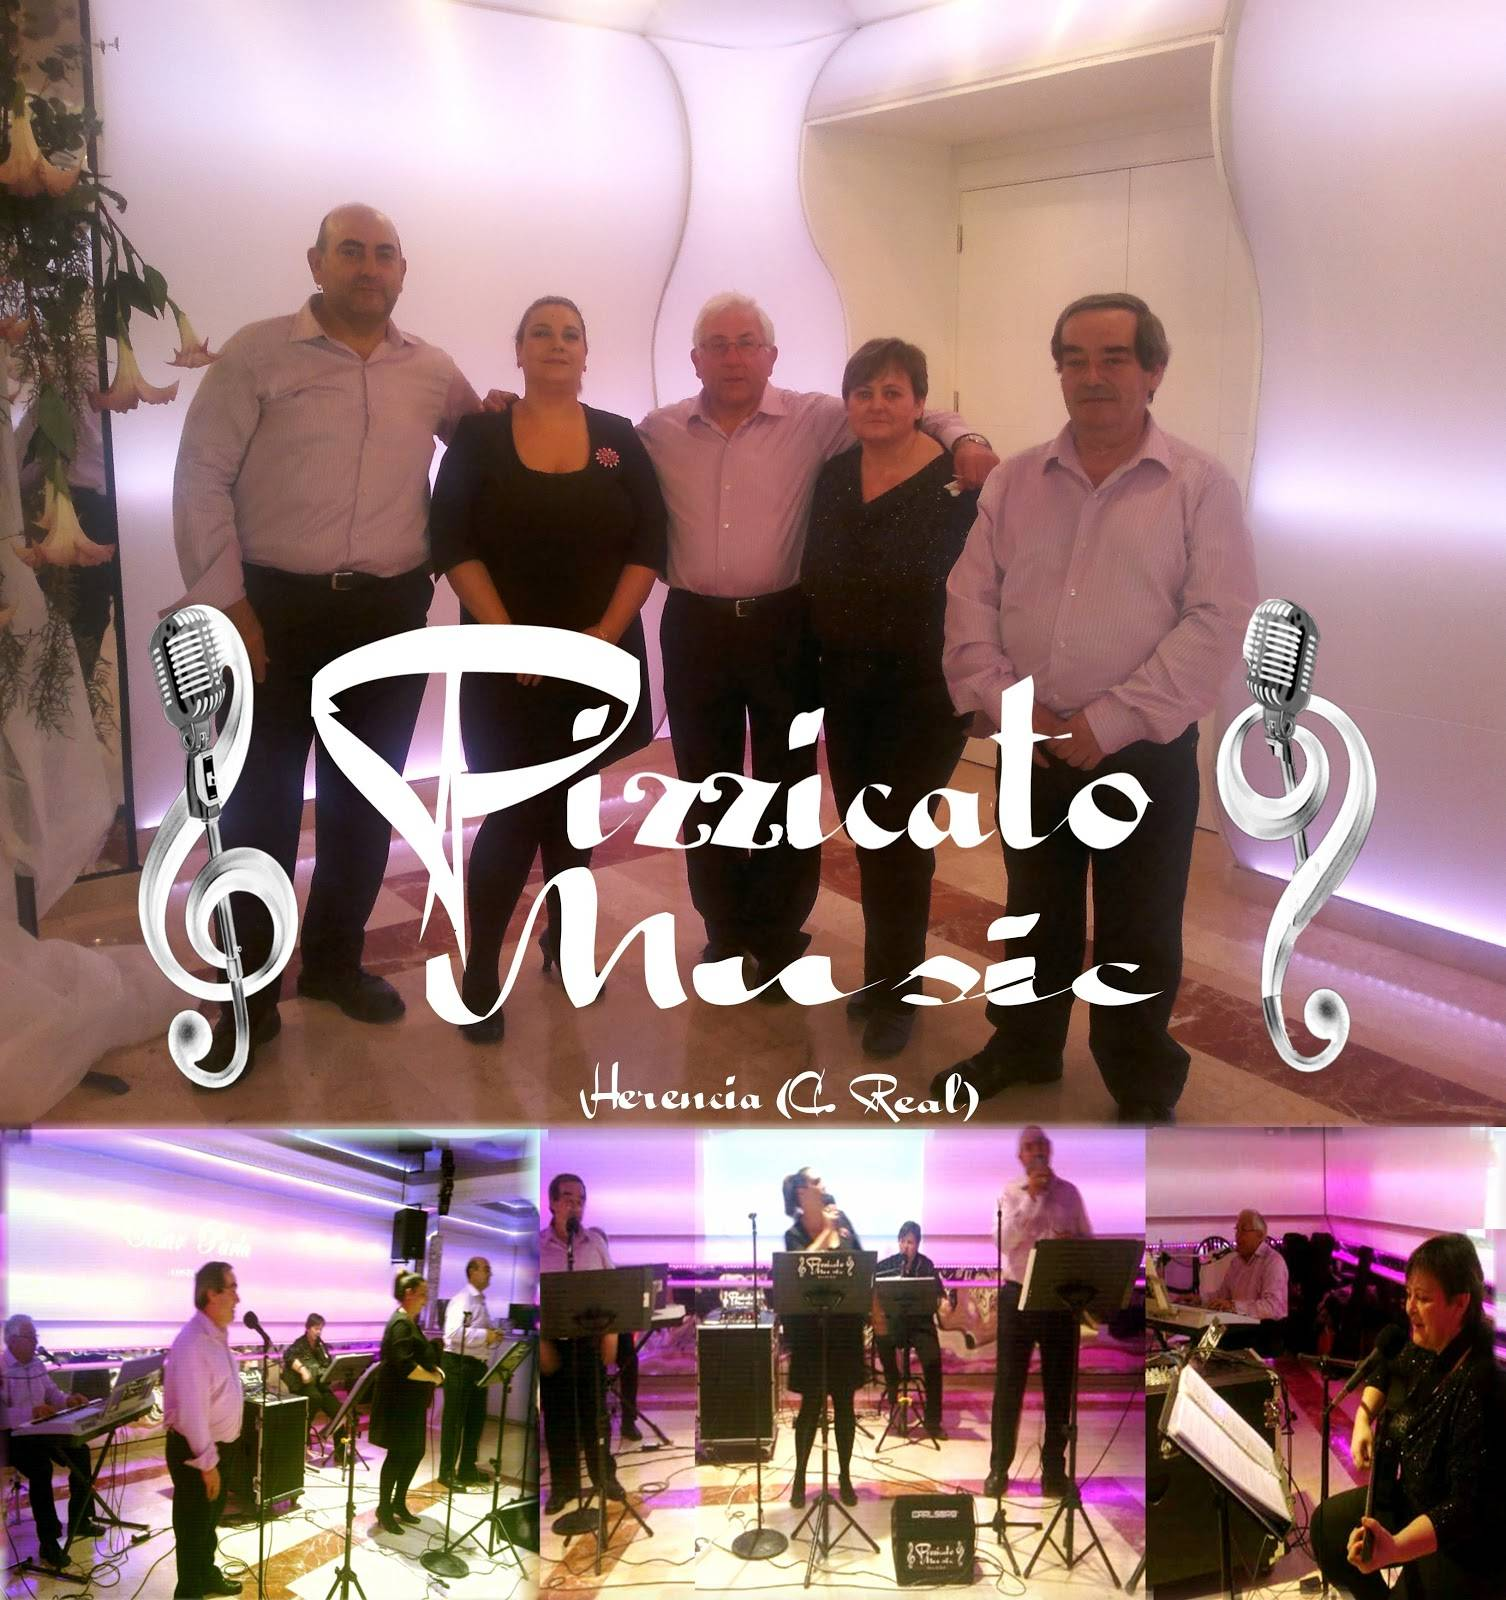 PIZZICATOMUSIC HERENCIA - Pizzicato Music, nuevo grupo musical de Herencia